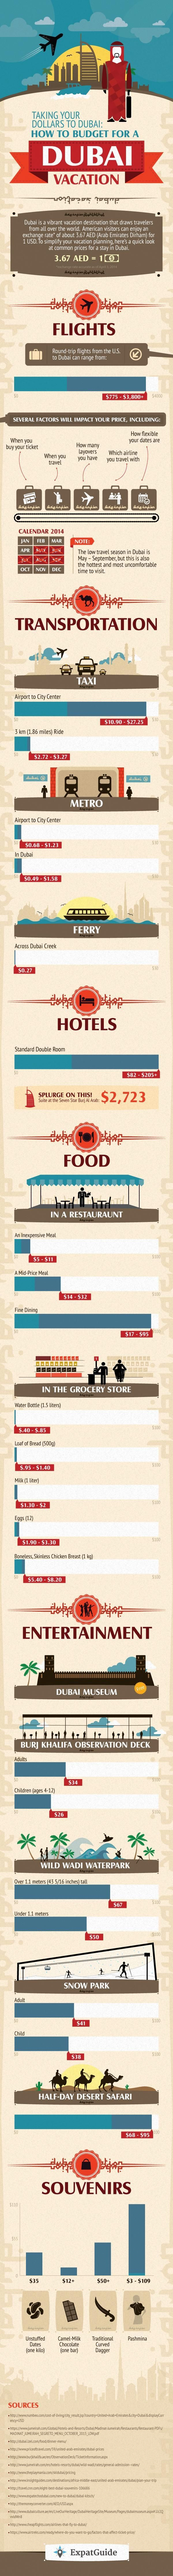 Infographic: How To Budget For A Dubai Vacation